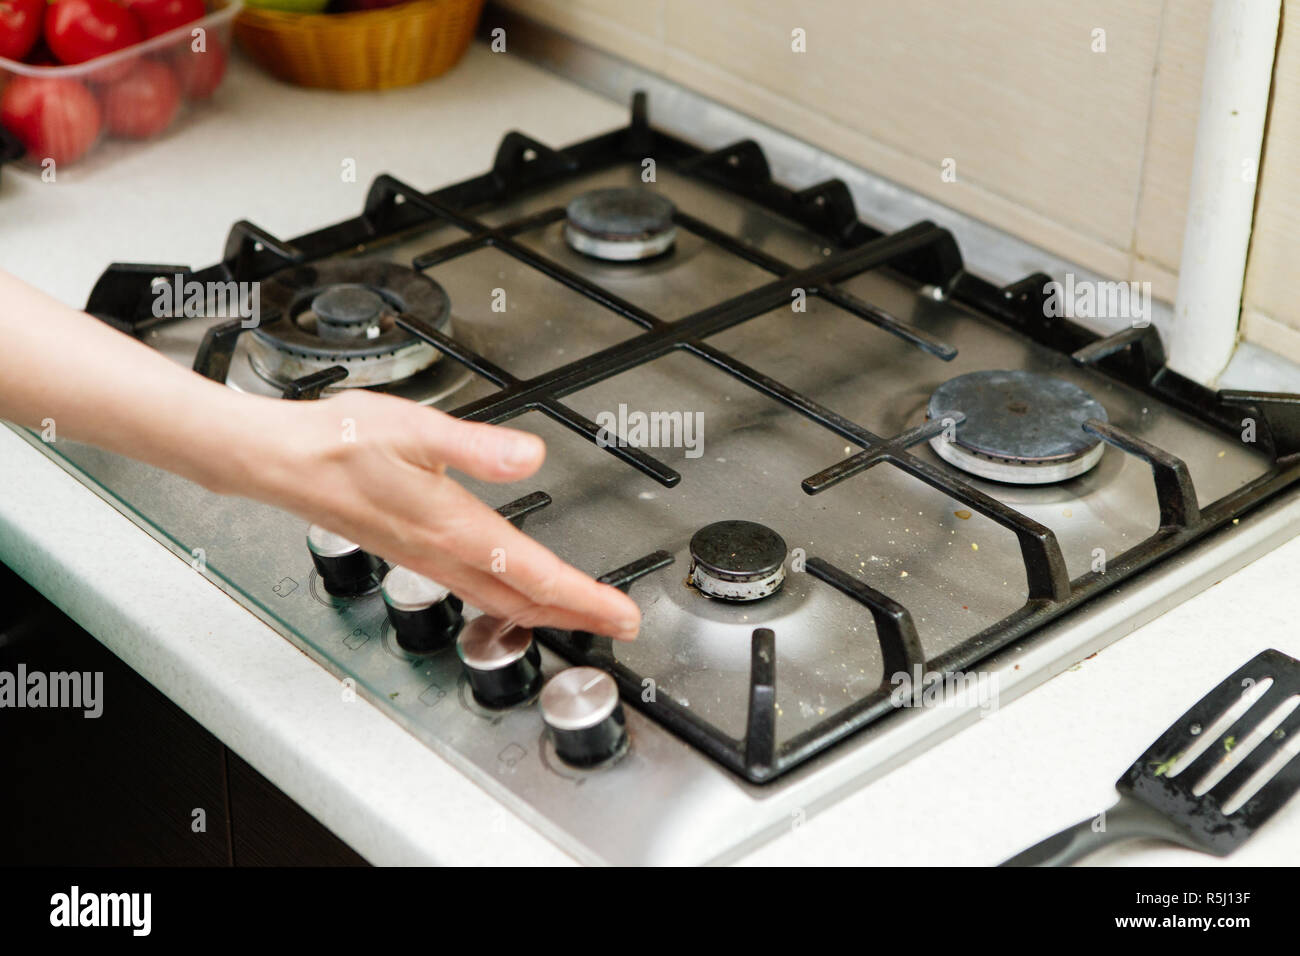 dirty gas stove, kitchen - Stock Image